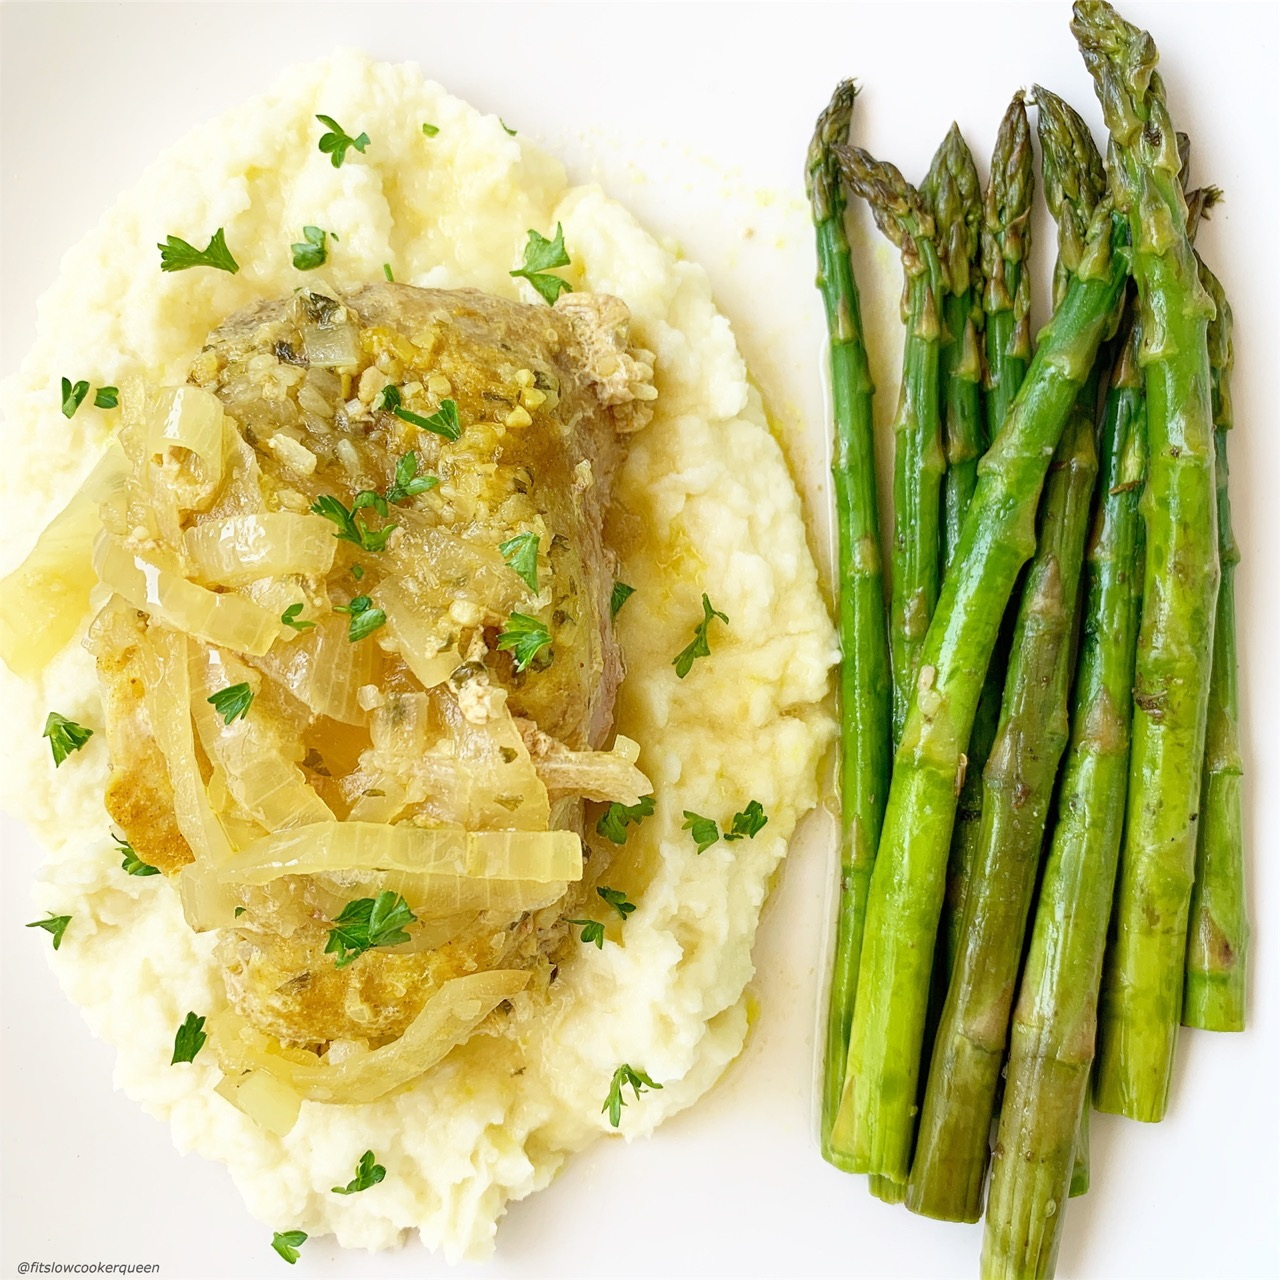 Front view of slow cooker french onion pork chops on top of mashed cauliflower and asparagus.